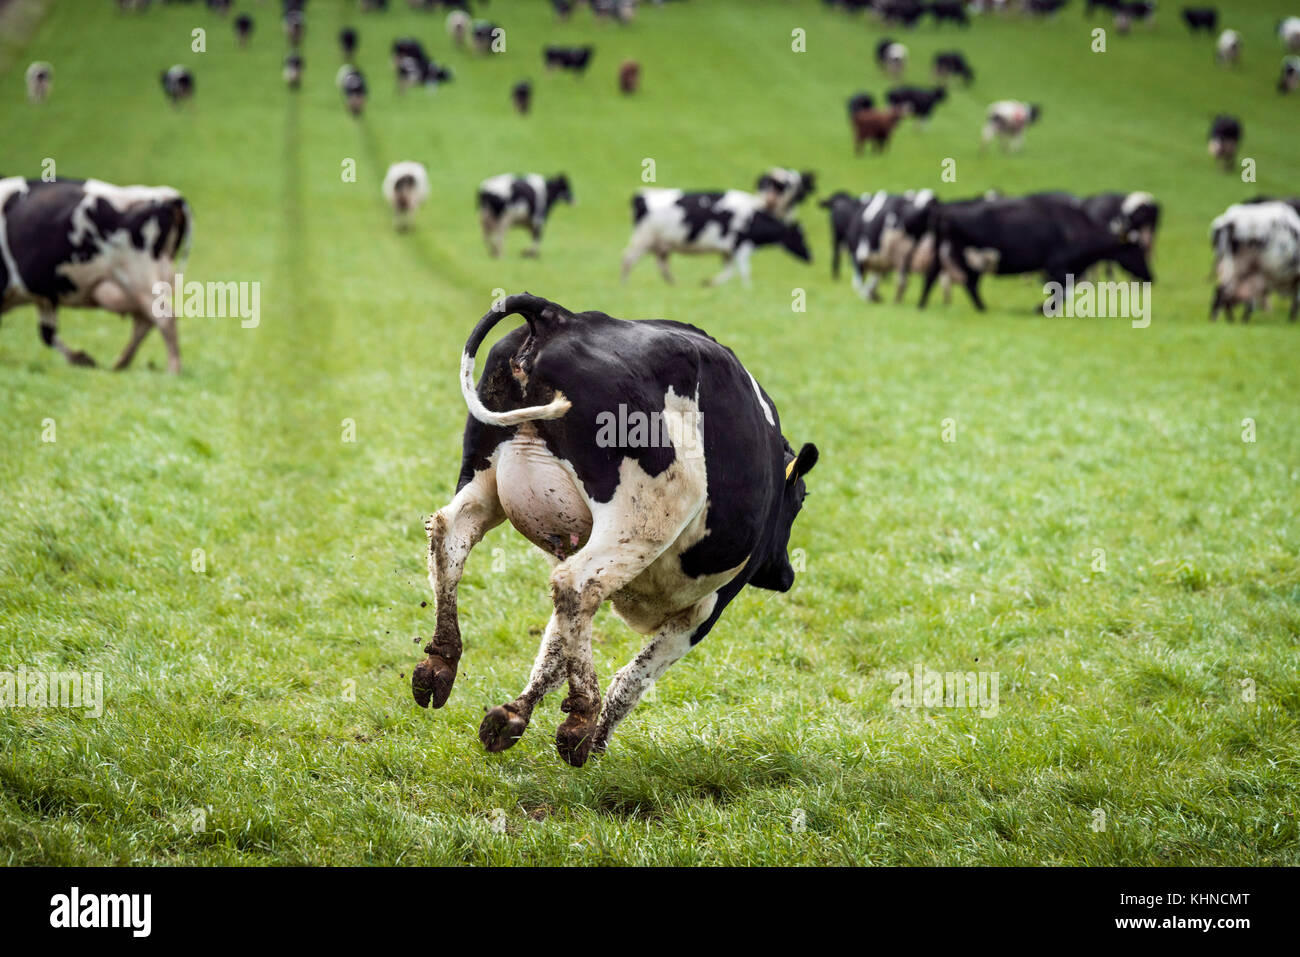 Happy cow jumping down a green field in the spring on the first day out on the grass - Stock Image